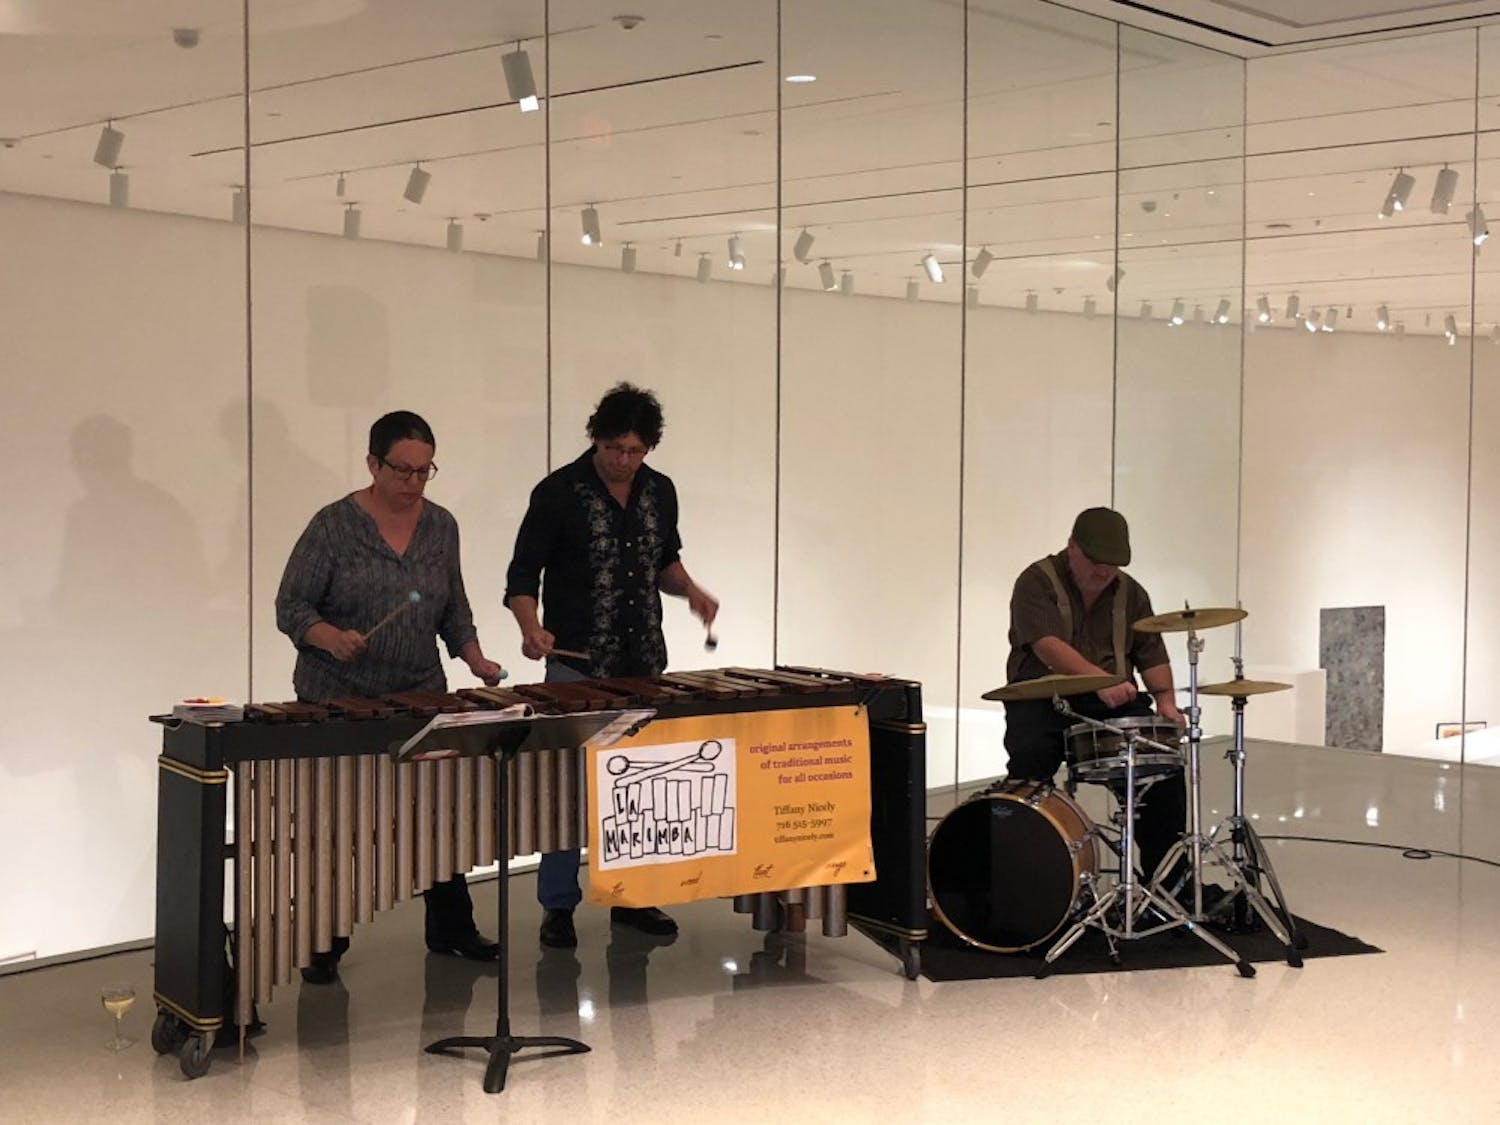 La Marimba takes over the Burchfield Art Center for the annual Riverrun Global Film Series. The traditional marimba music of Mexico and Central America are accompanied by the bands witty humor during Friday's event.